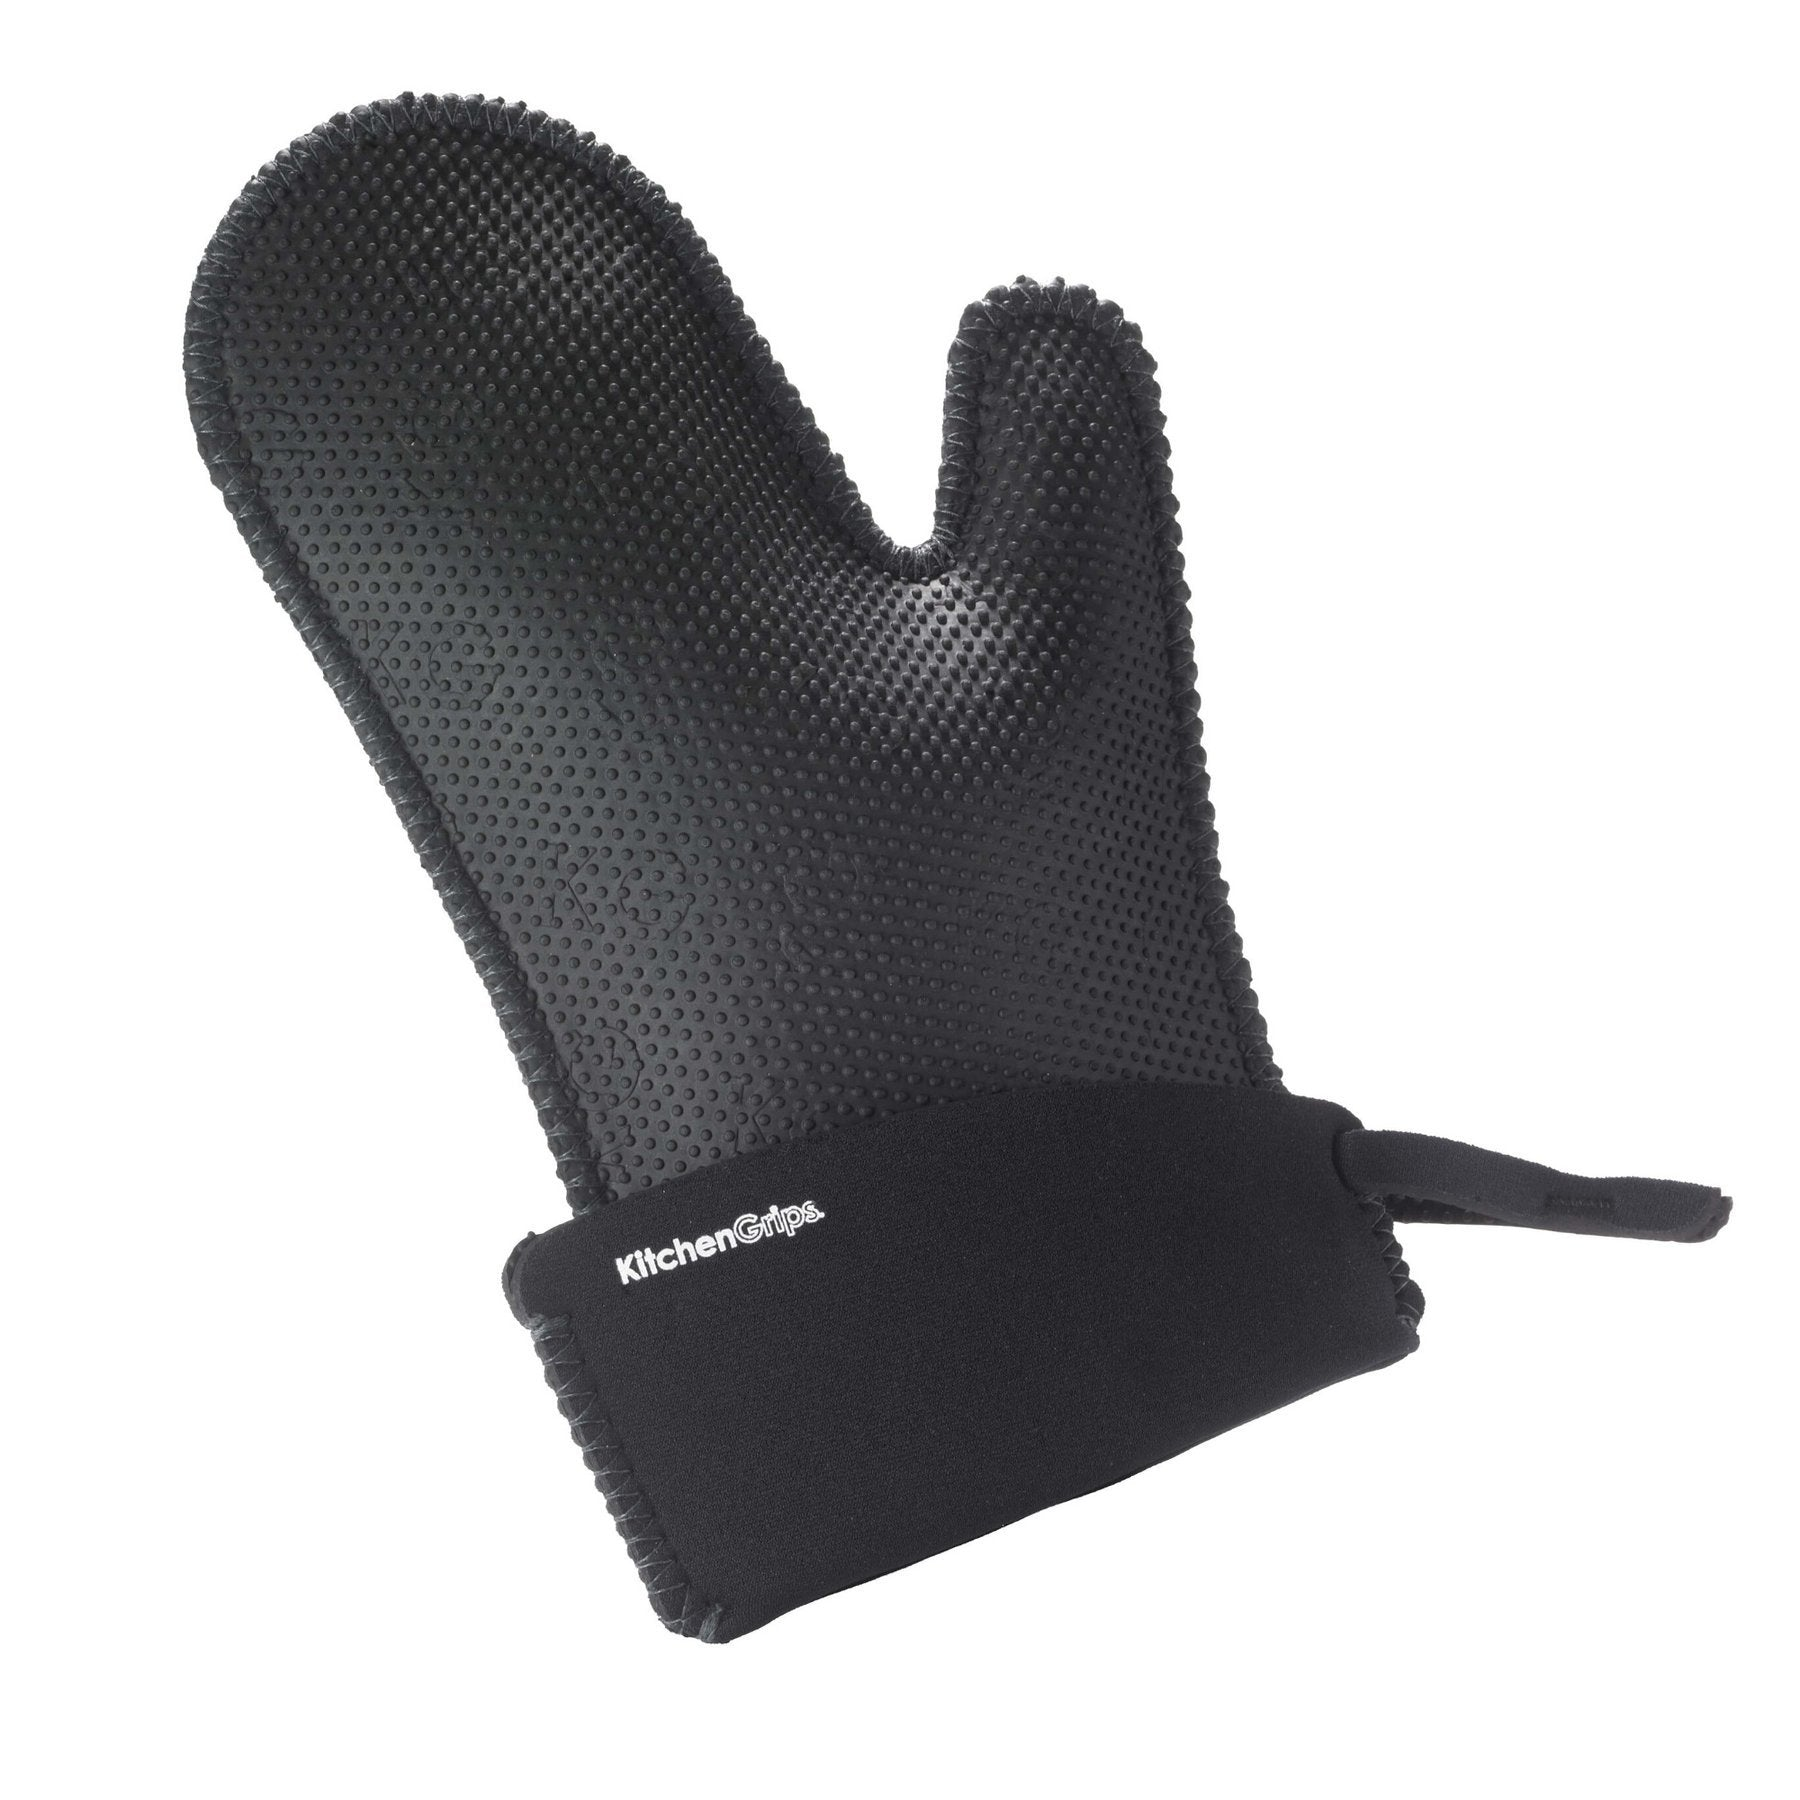 Kitchen Grips Oven Mitts Large Black